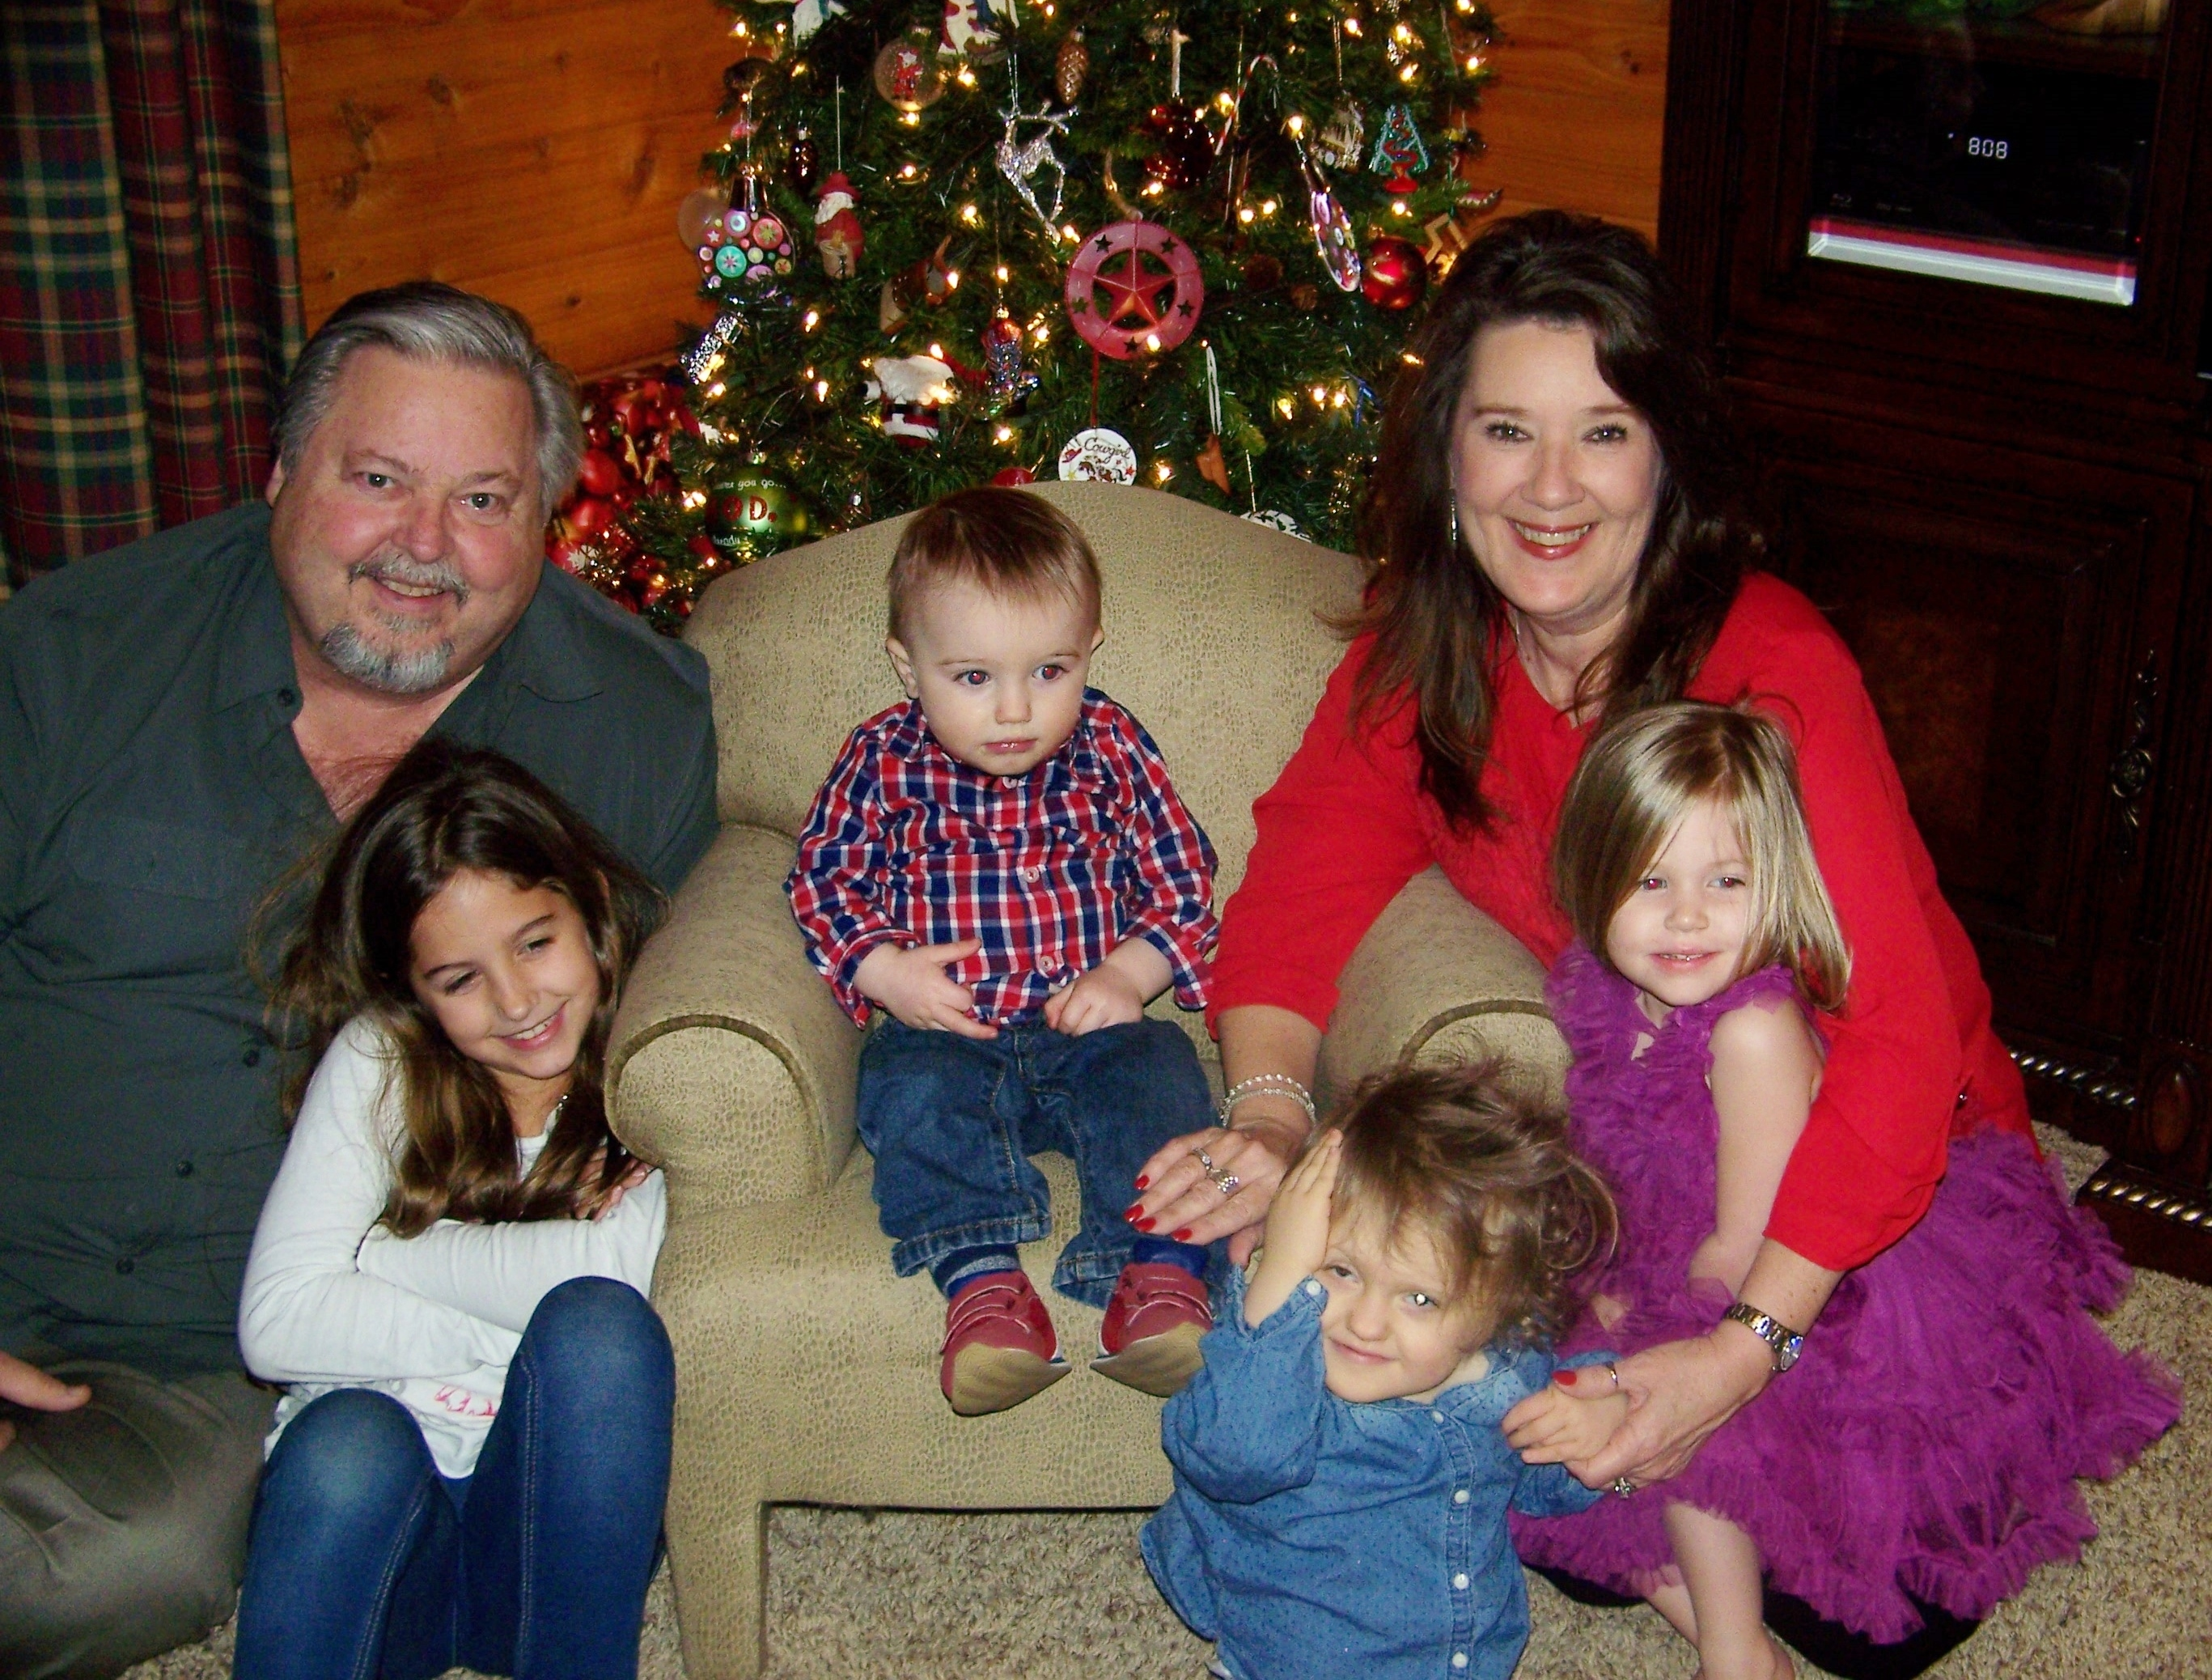 Christmas Photo with Grandkids